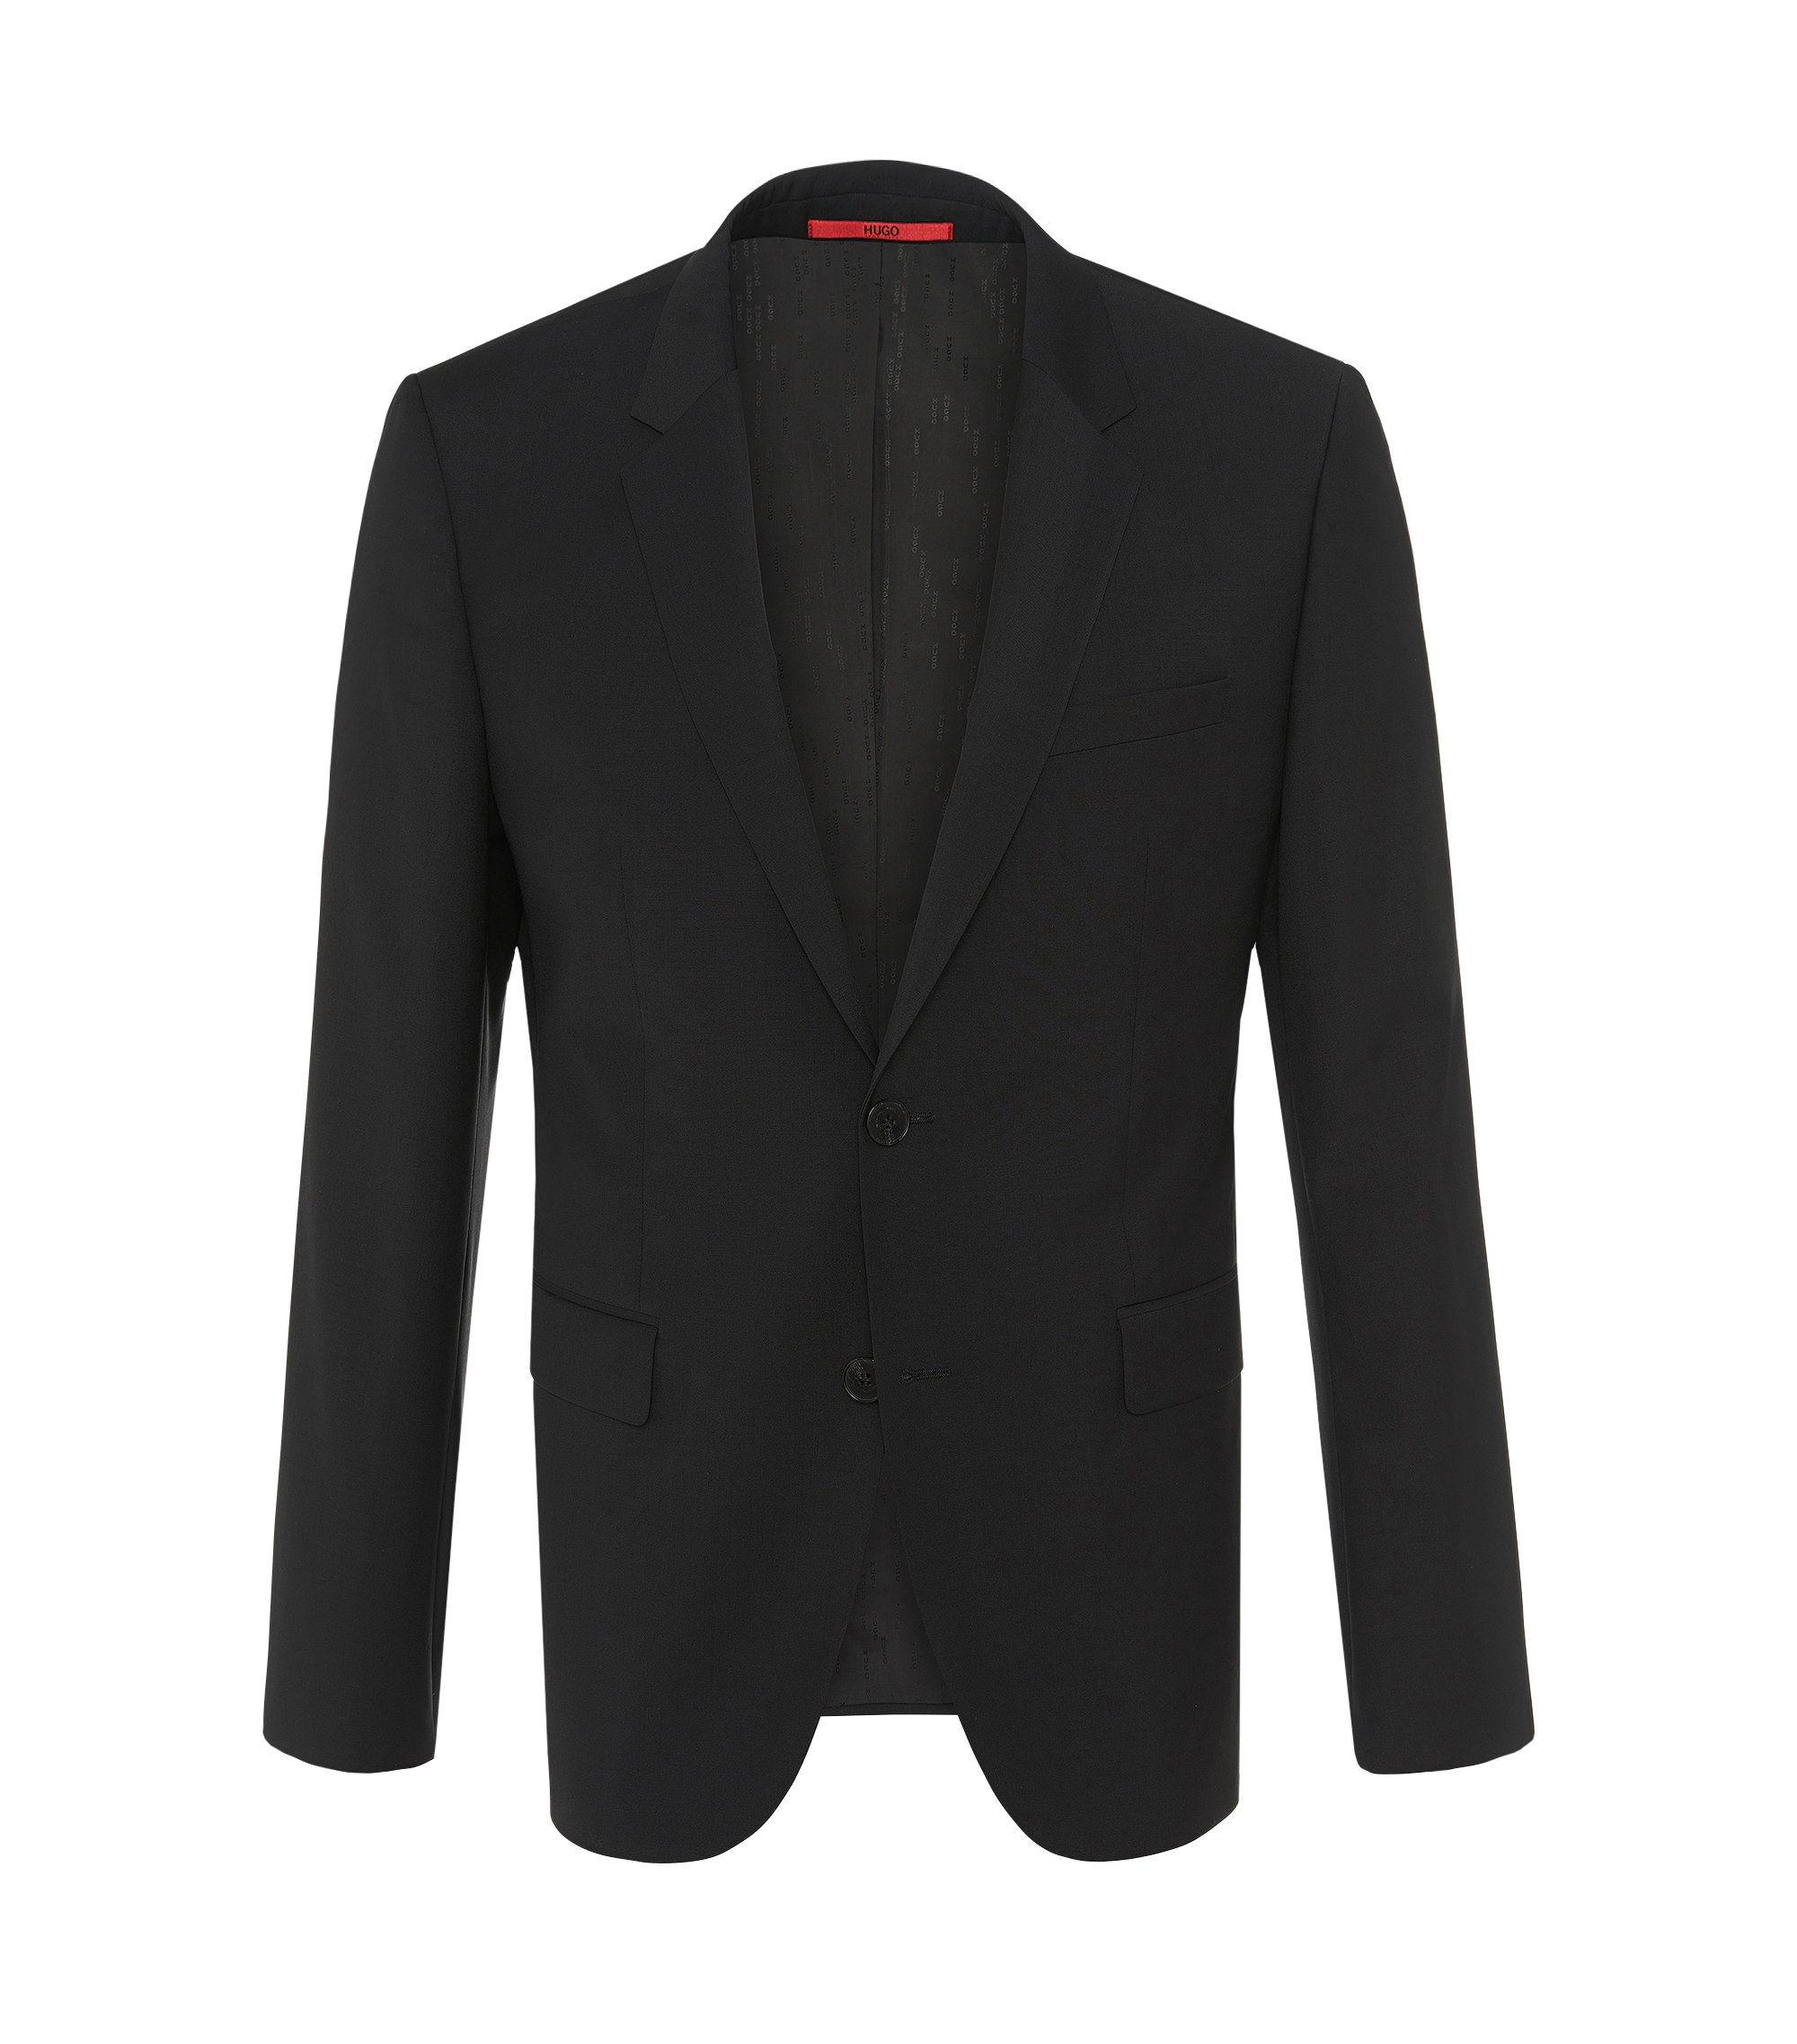 Virgin Wool Sport Coat, Slim Fit | Aerin S , Black